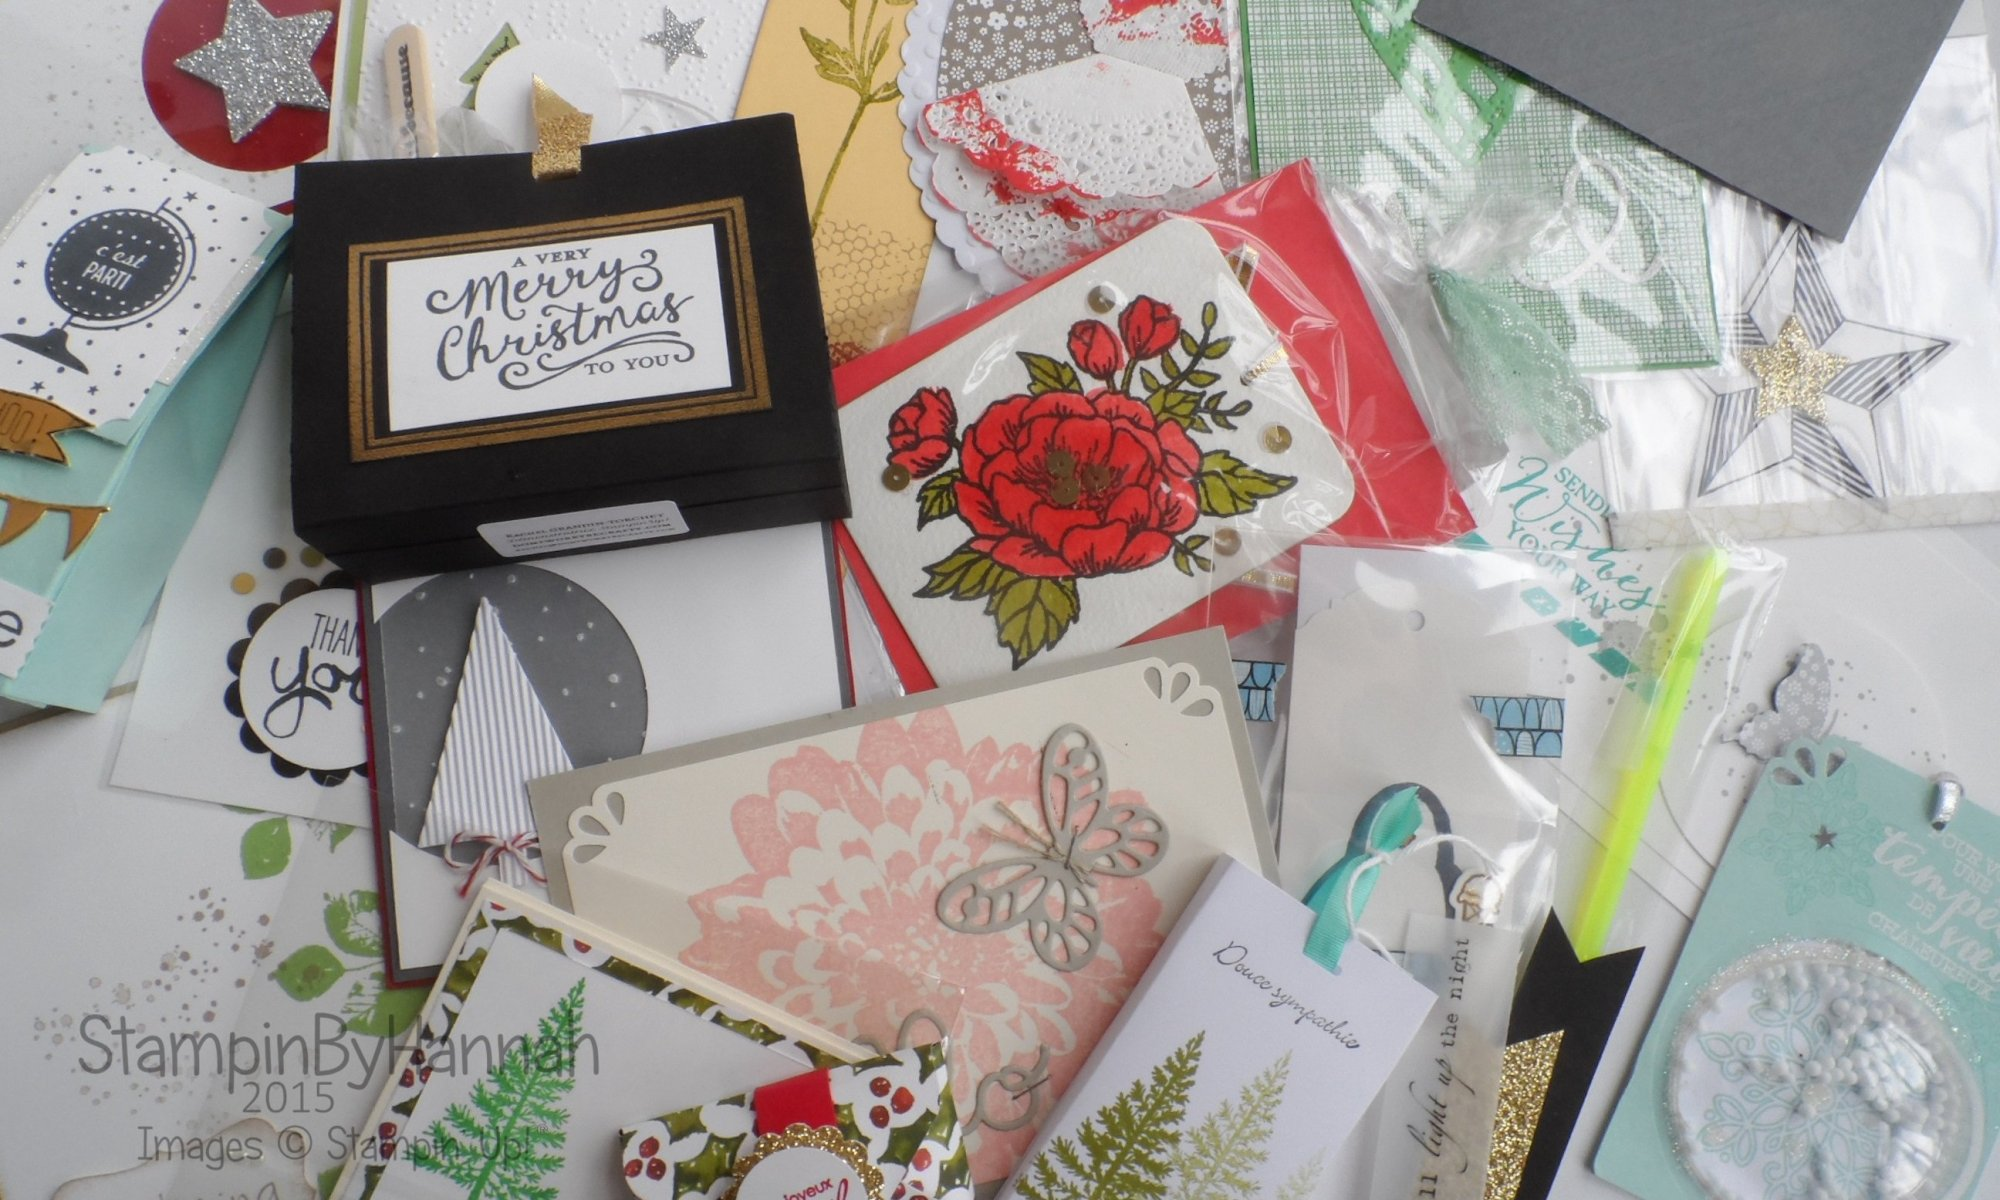 Stampin' Up! UK swaps from Brussels